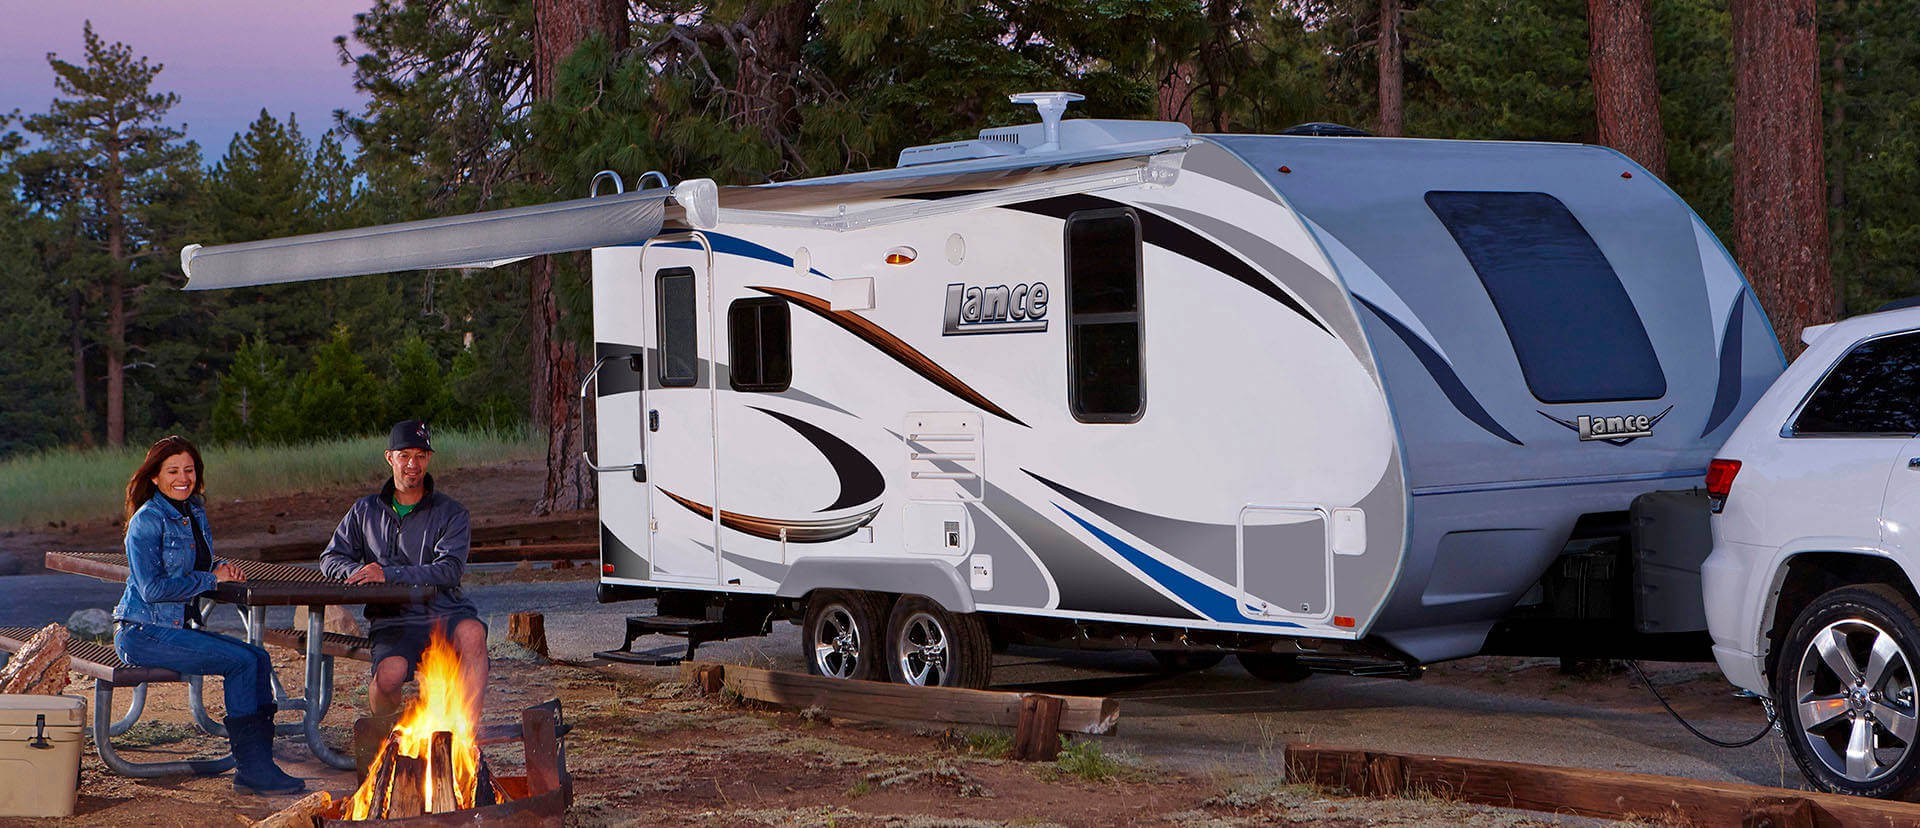 Can I Rent Out My Travel Trailer? - Mark Jenney - Medium